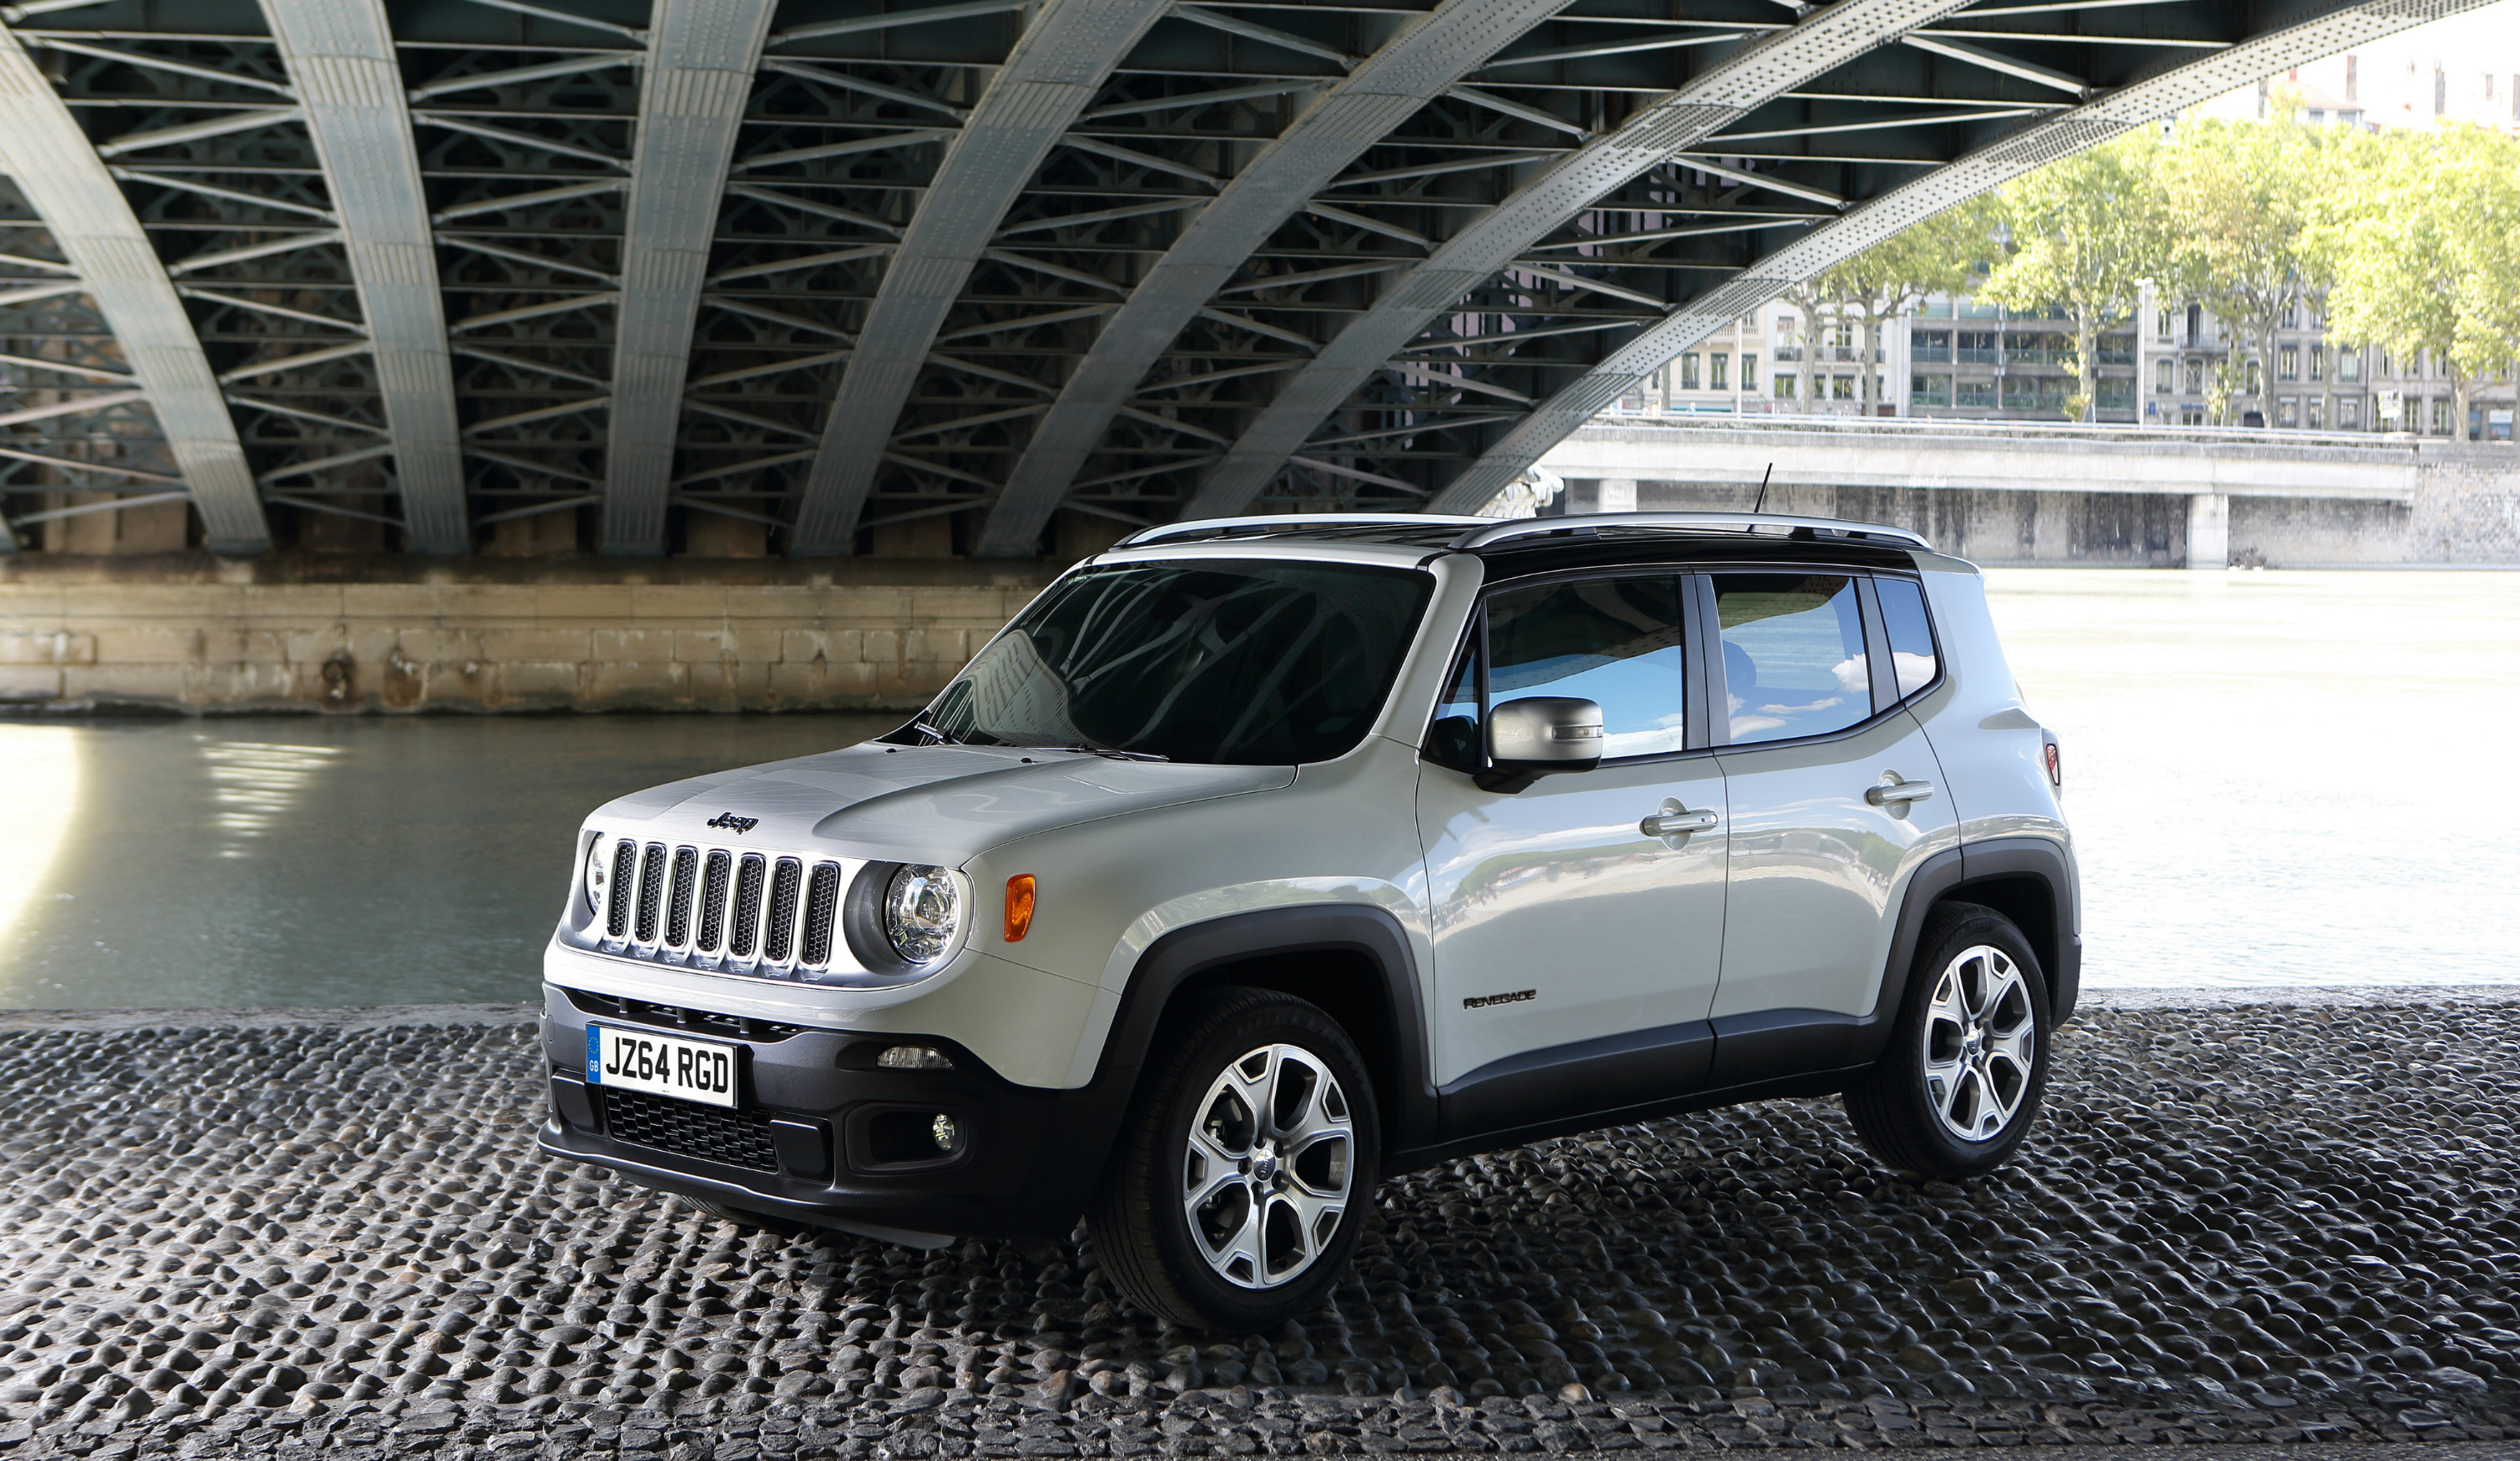 Novo Jeep Renegade 2017 >> Jeep Renegade Pricing Starts at €18,507 in Europe, £16,995 in the United Kingdom - autoevolution